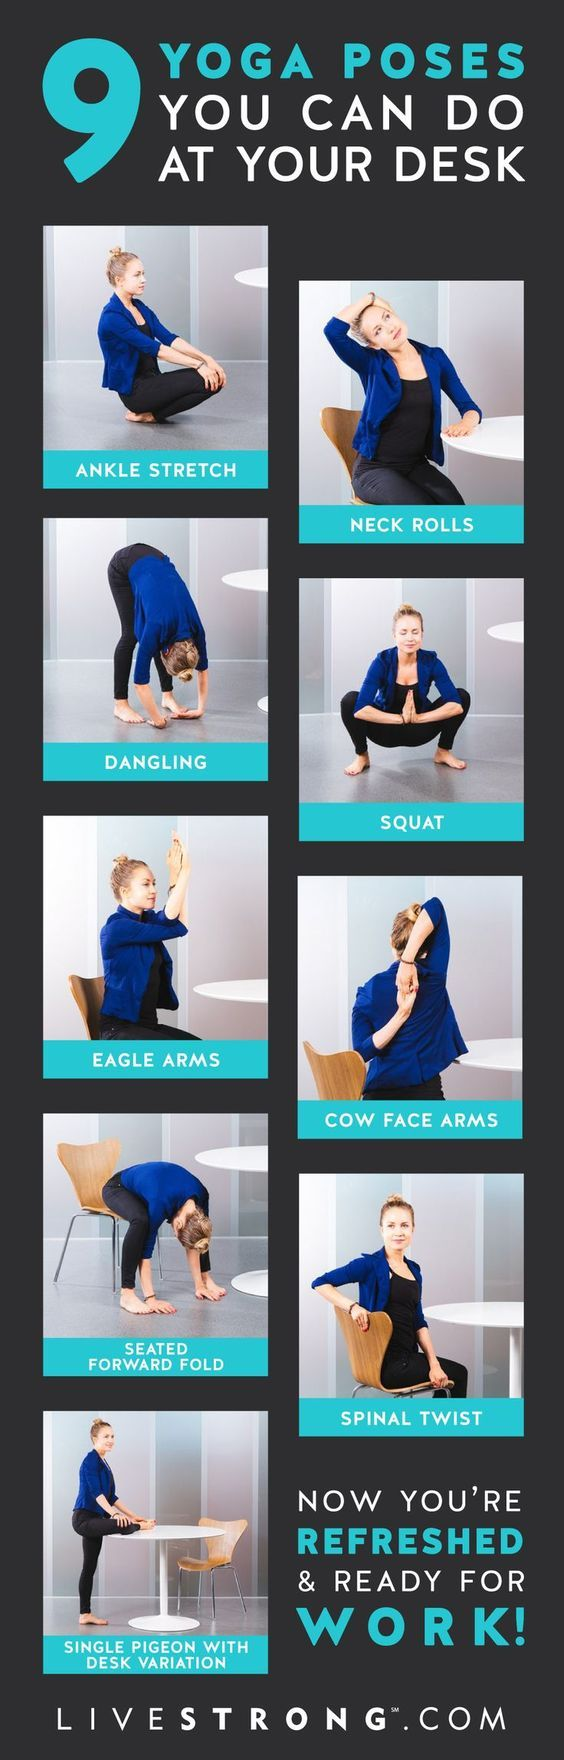 DownDog Diary Yoga Keeps you Young: 9 Yoga Poses You Can Do at Your Desk Right Now